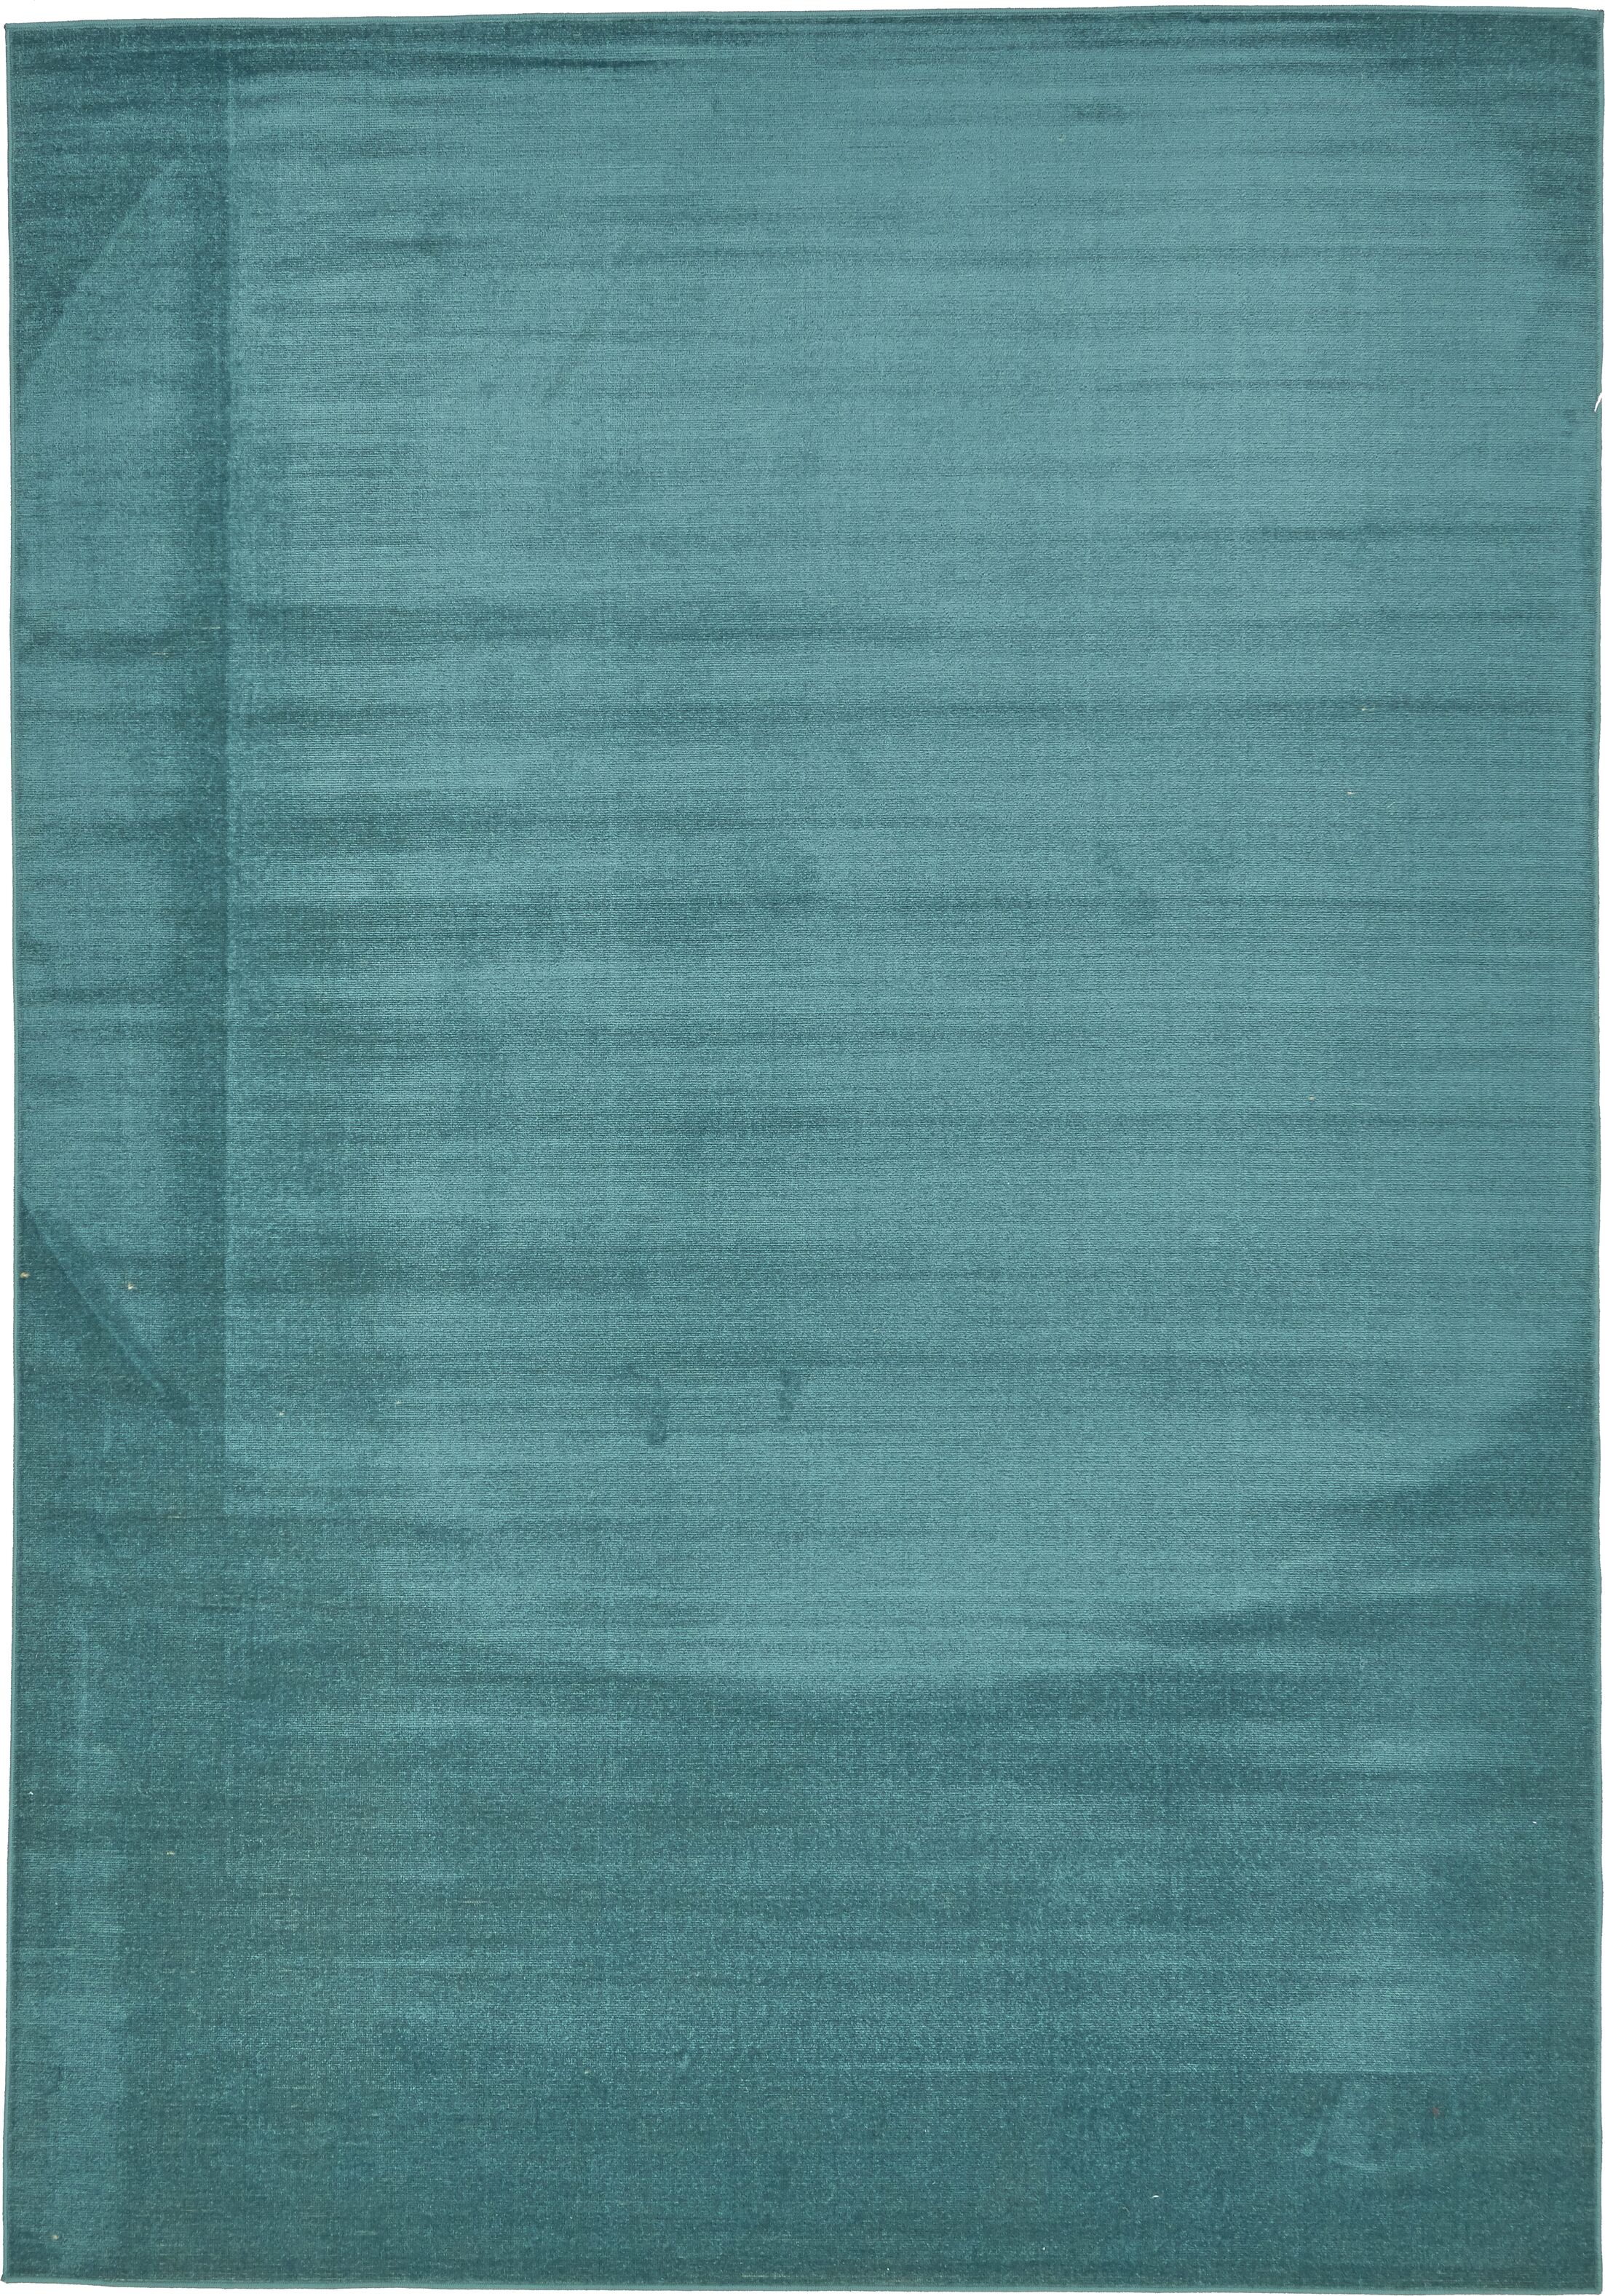 Whether you're looking to tie together your space or add a pop of color to a neutral-hued ensemble, this lovely rug can do it all. Featuring a vibrant teal hue, it is woven of polypropylene with a low pile design. Try setting it under a tufted chaise ...